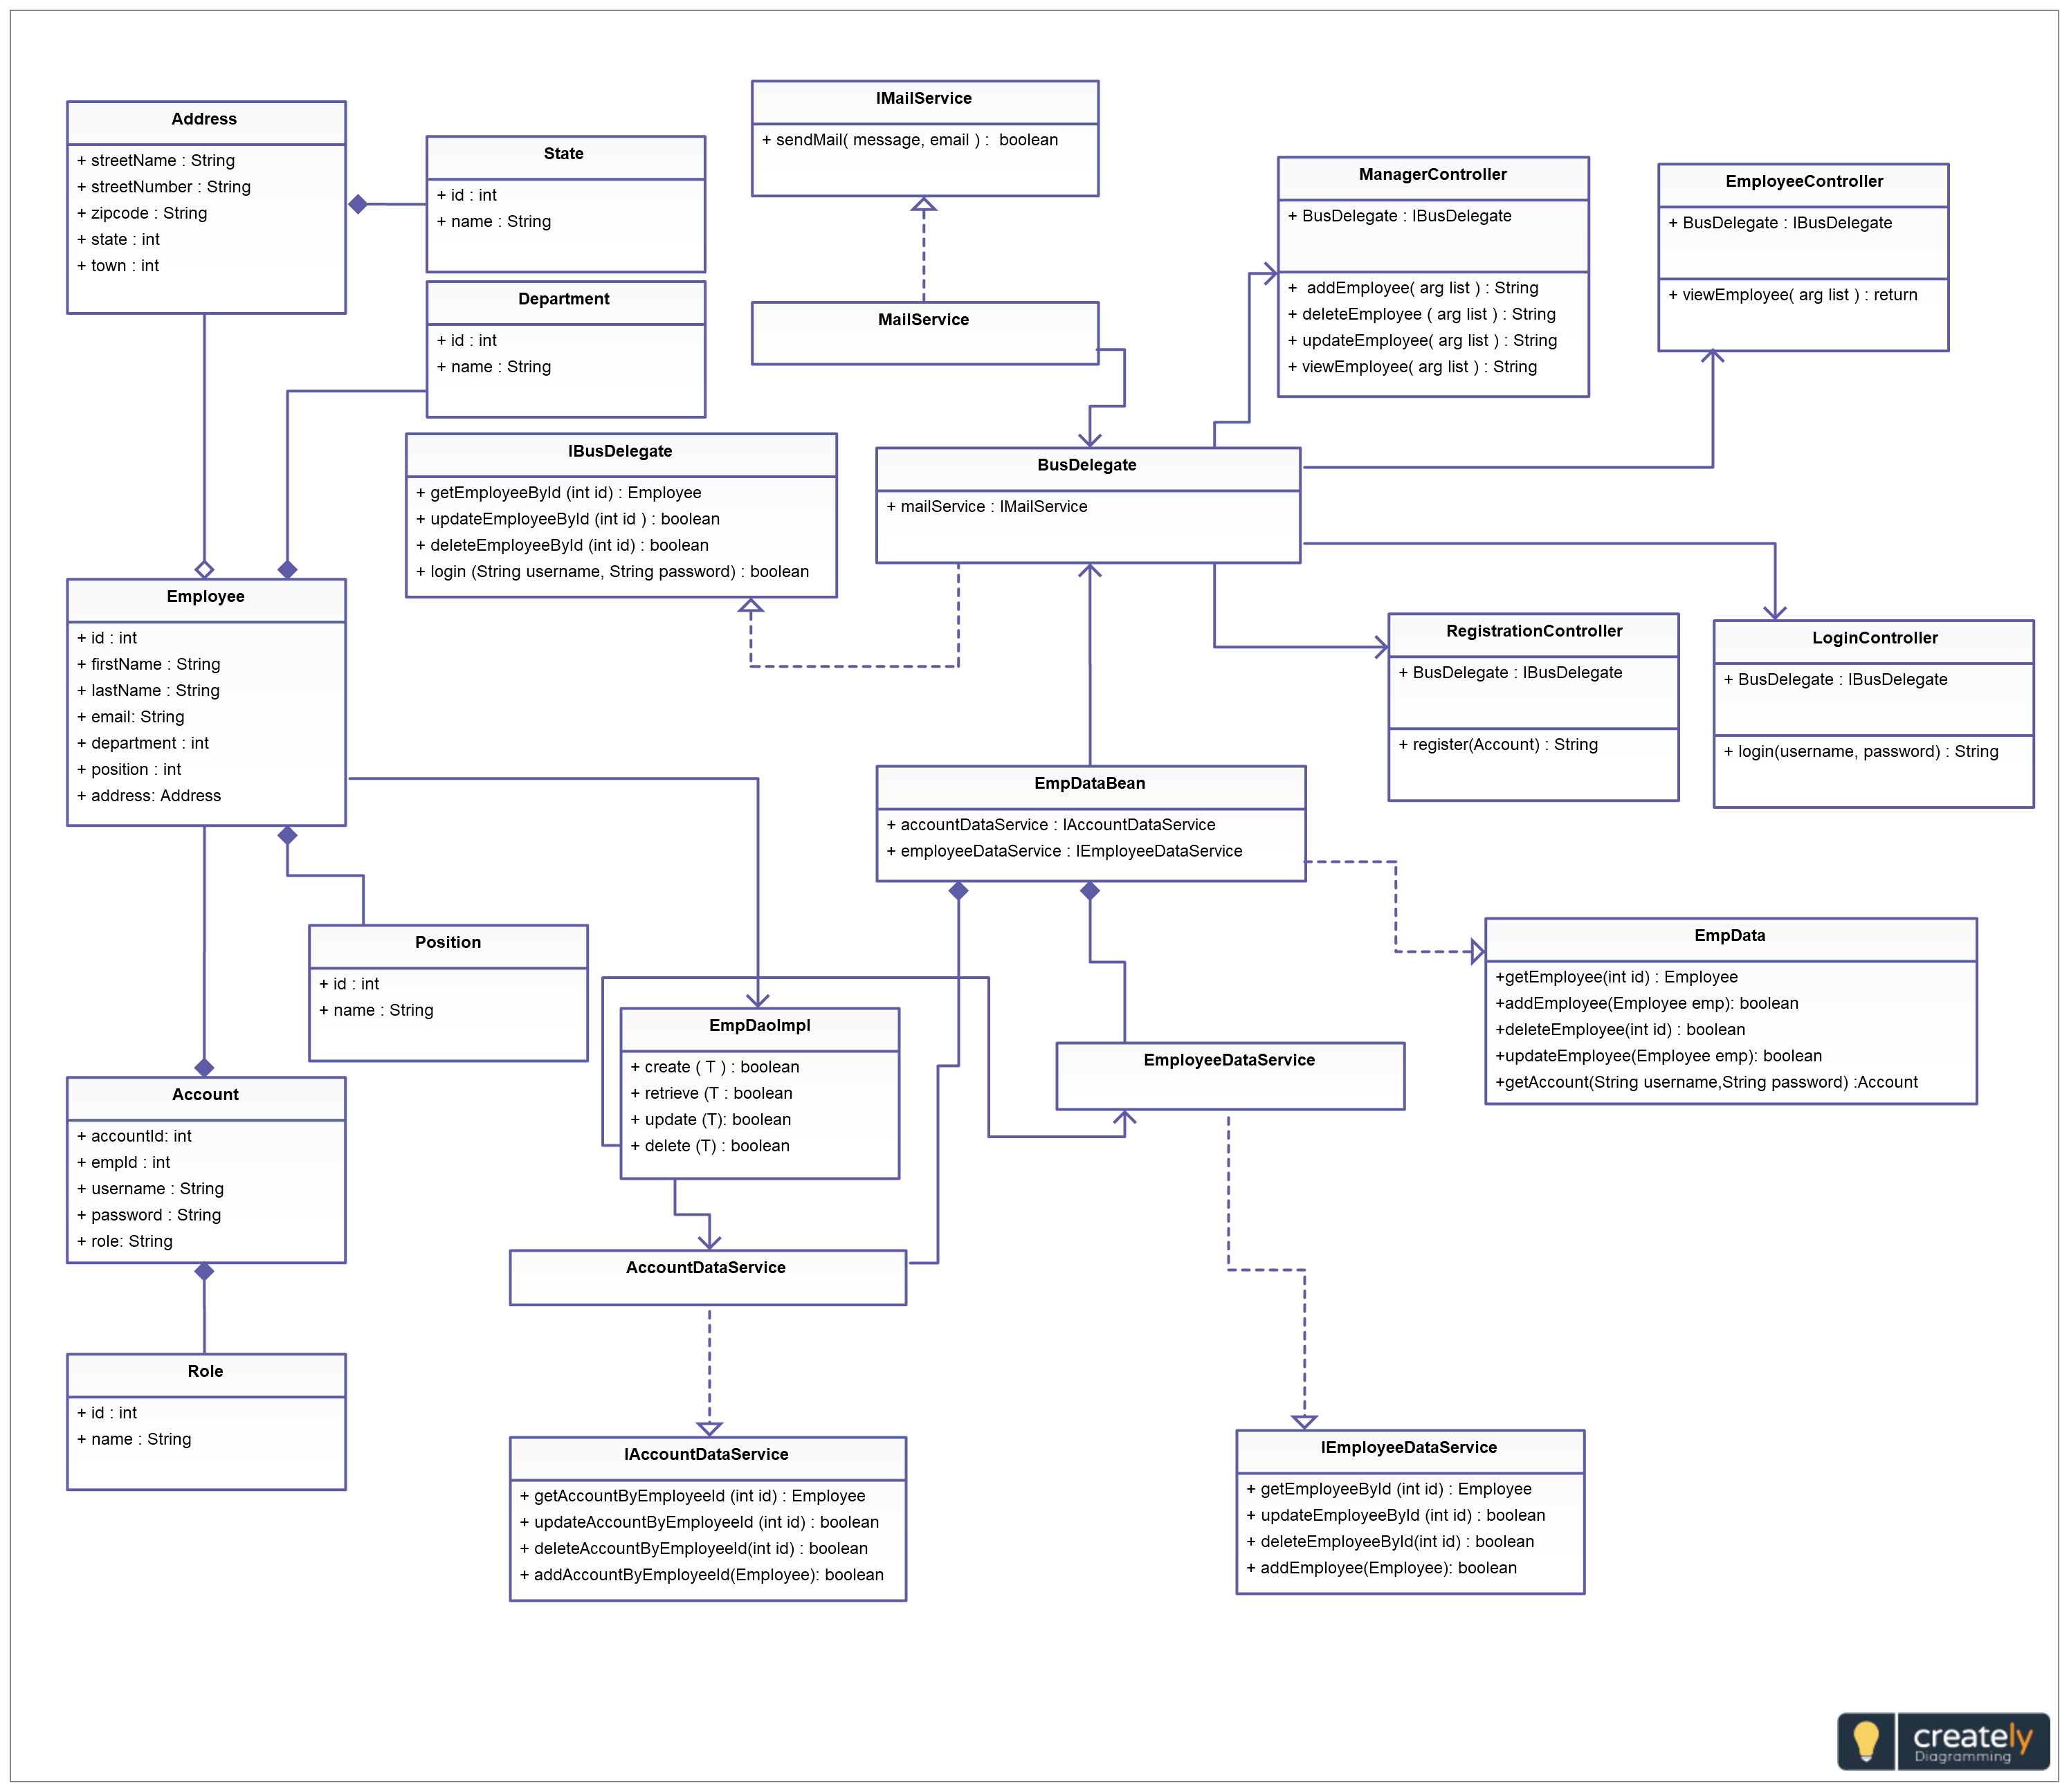 hight resolution of click on the example to edit online and download as an image class classdiagram uml umlclass employee management system software apps